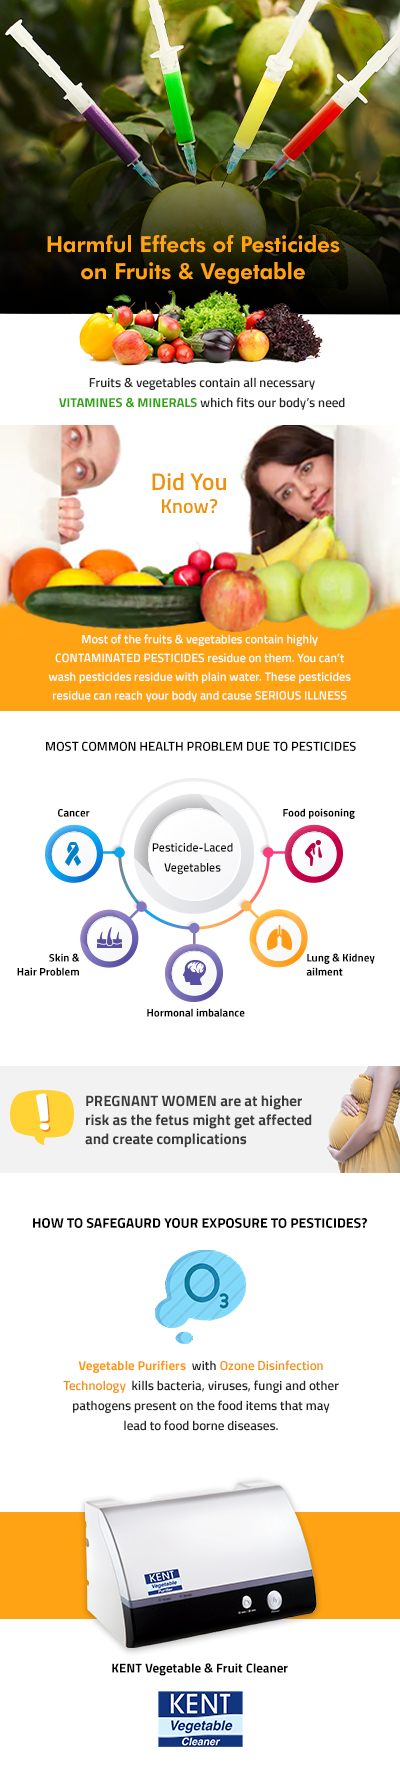 Harmful Effects of Pesticides on Fruits and Vegetables